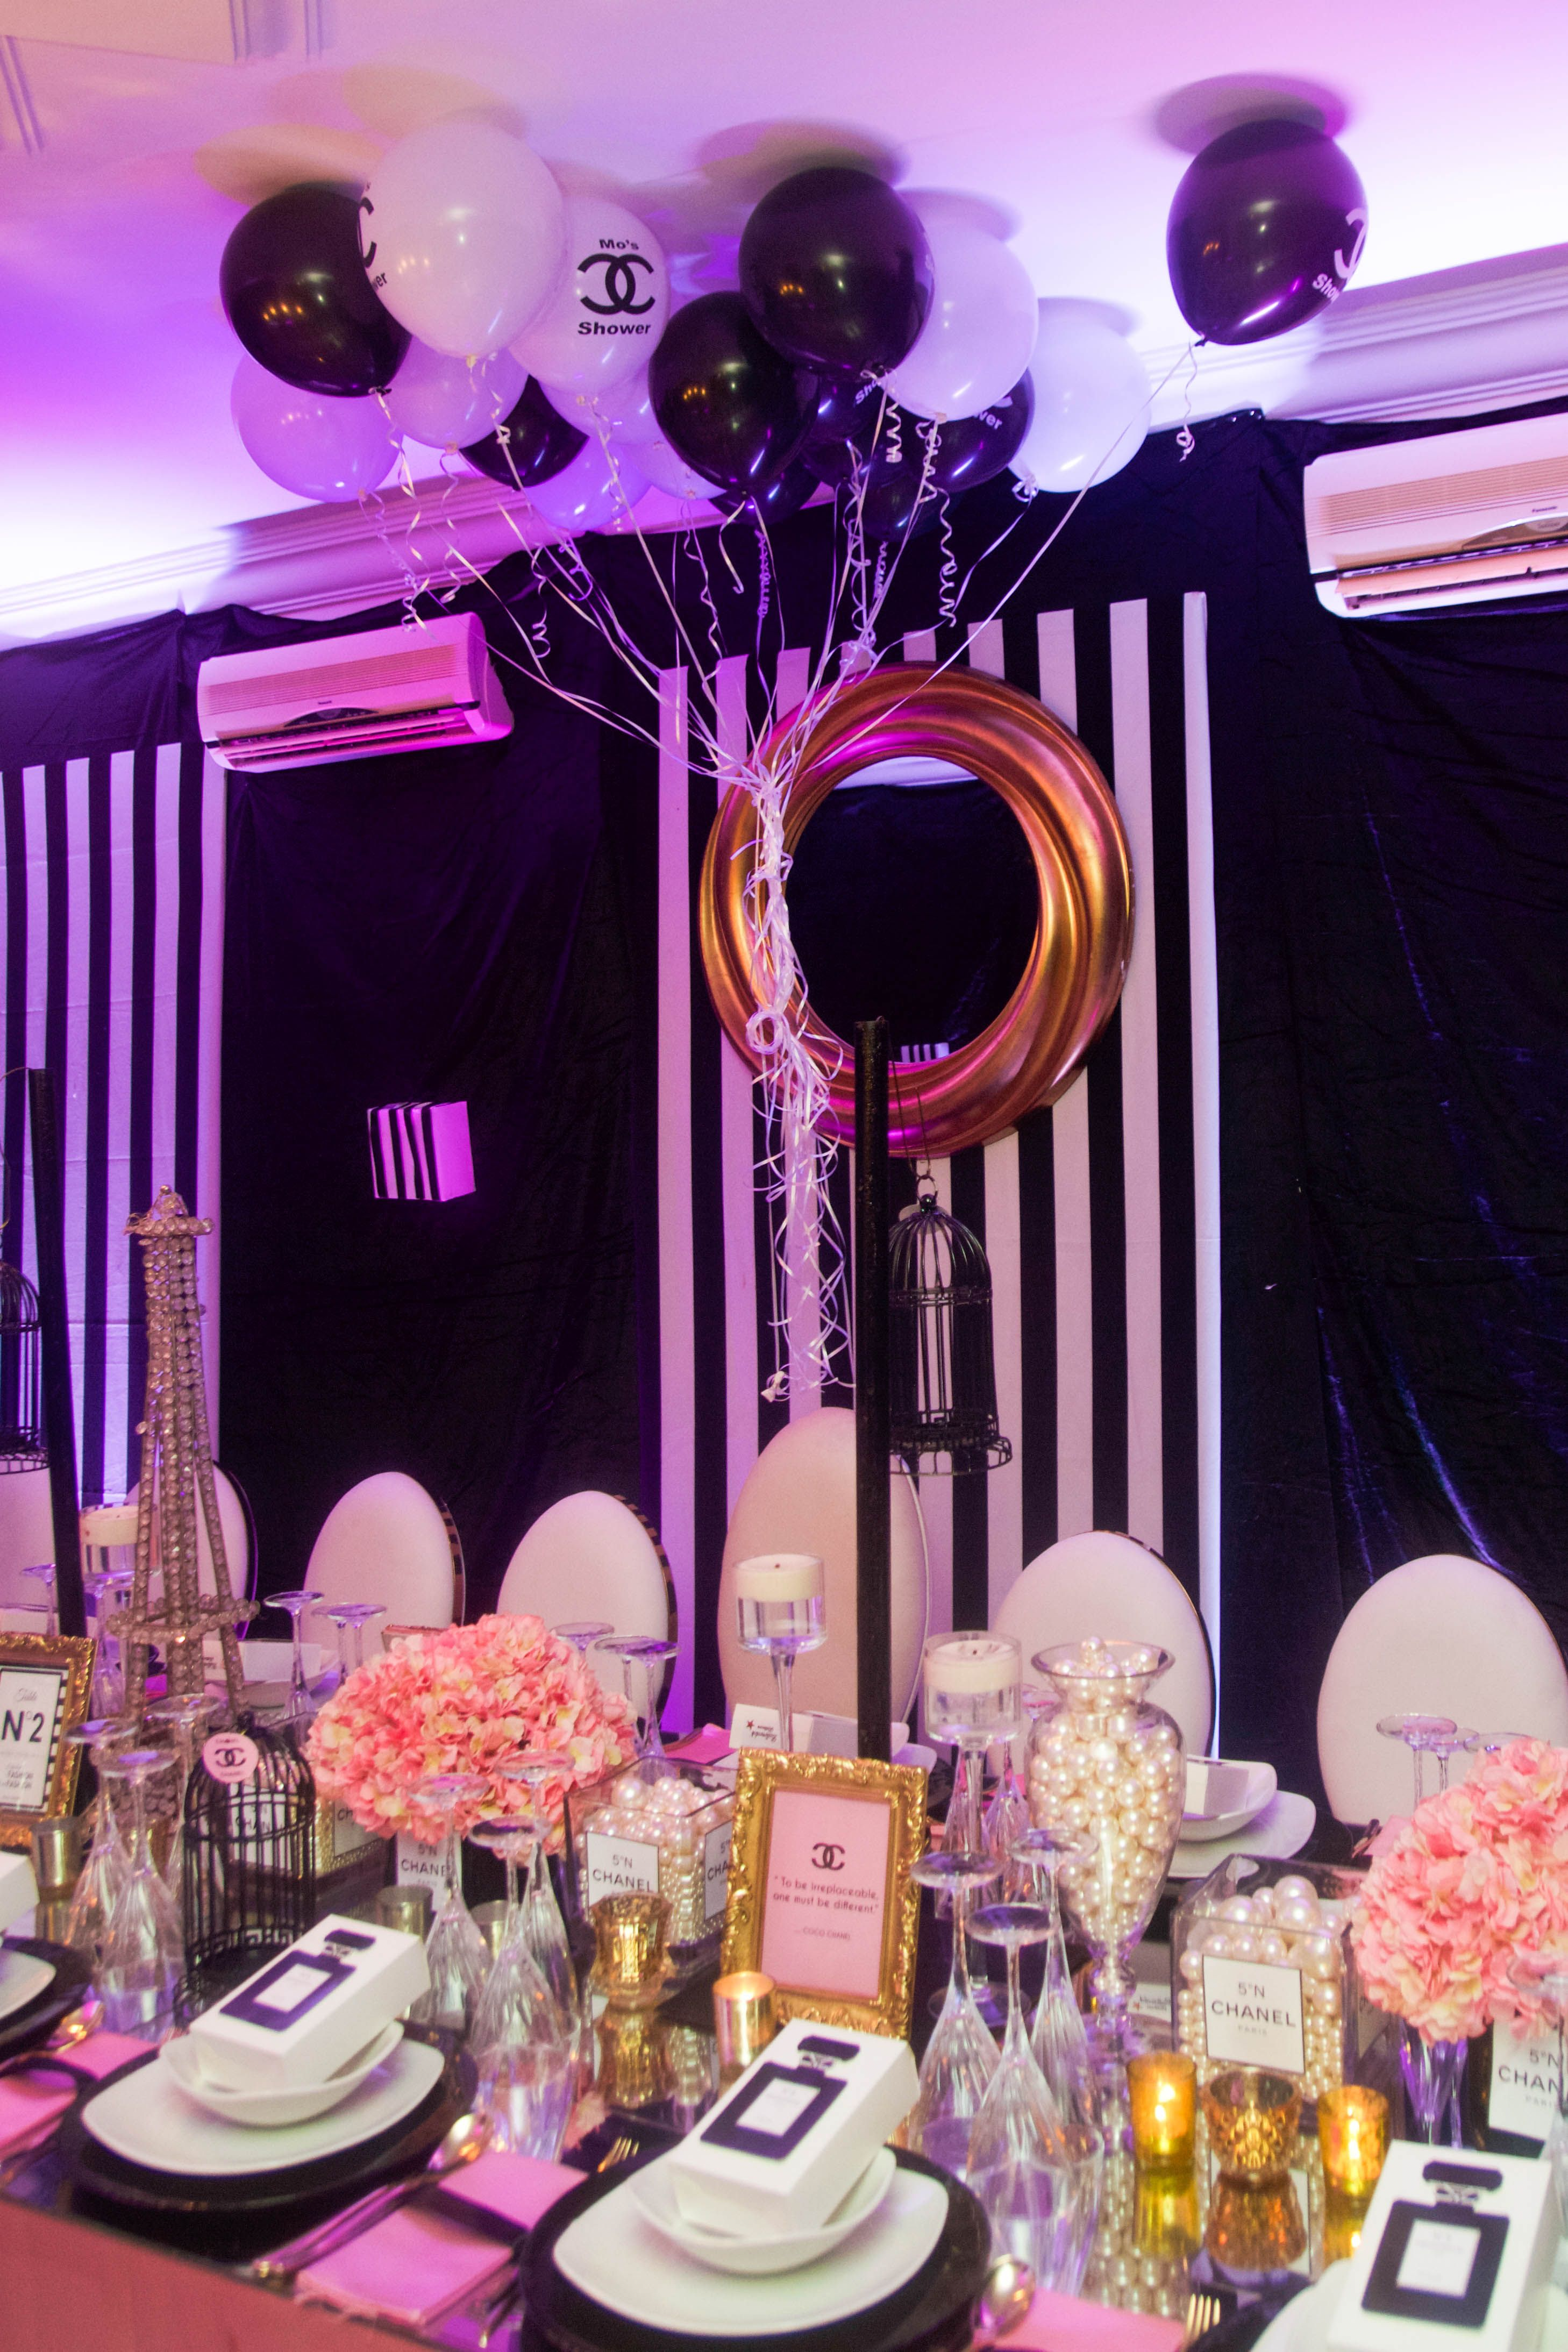 My Gorgeous Chanel Themed Bridal Shower In Lagos Nigeria Bridal Shower Bridal Shower Decorations Bridal Shower Theme